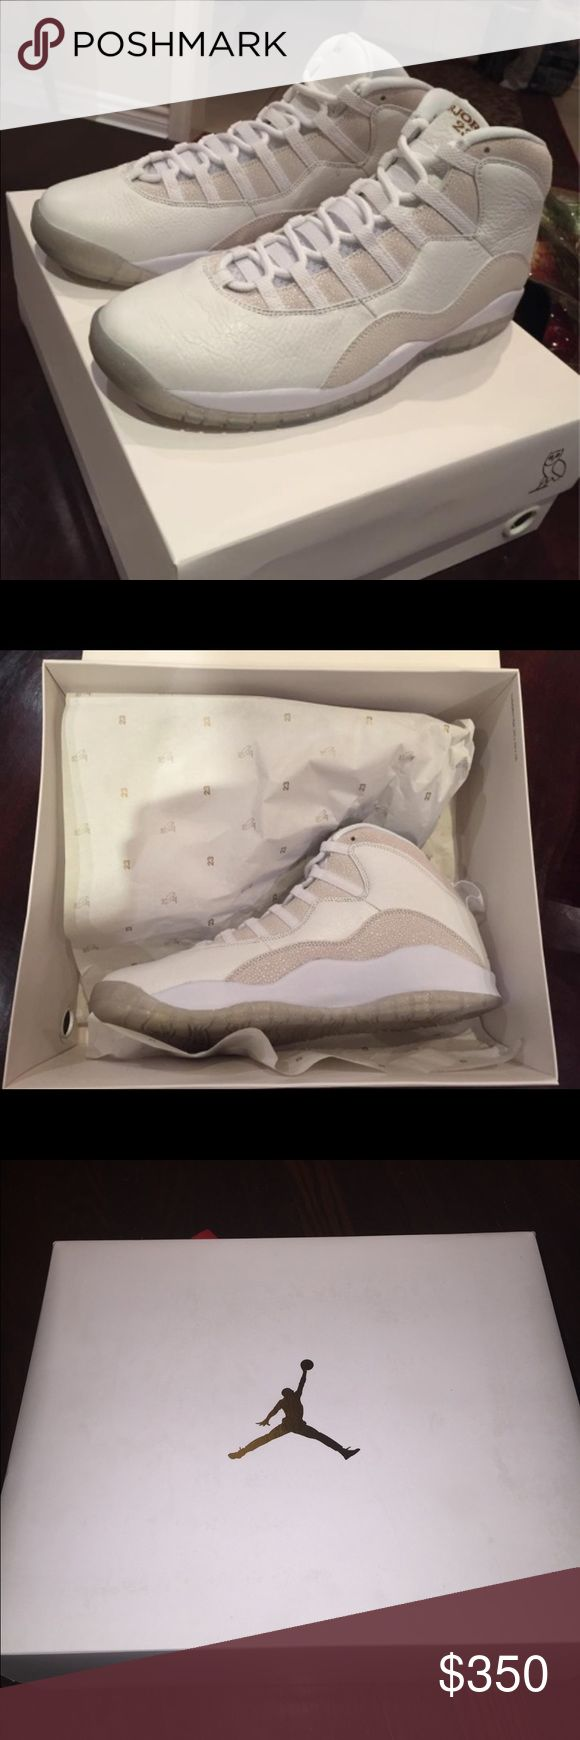 Air Jordan 10 OVO With RECEIPT Comes With Receipt Brand New Payment Through Western Union Only My 🅿️🅿️ is holding Paymnets Comment Your Number If You Want To Buy ‼️ Shipping is free Price negotiable Jordan Shoes Sneakers